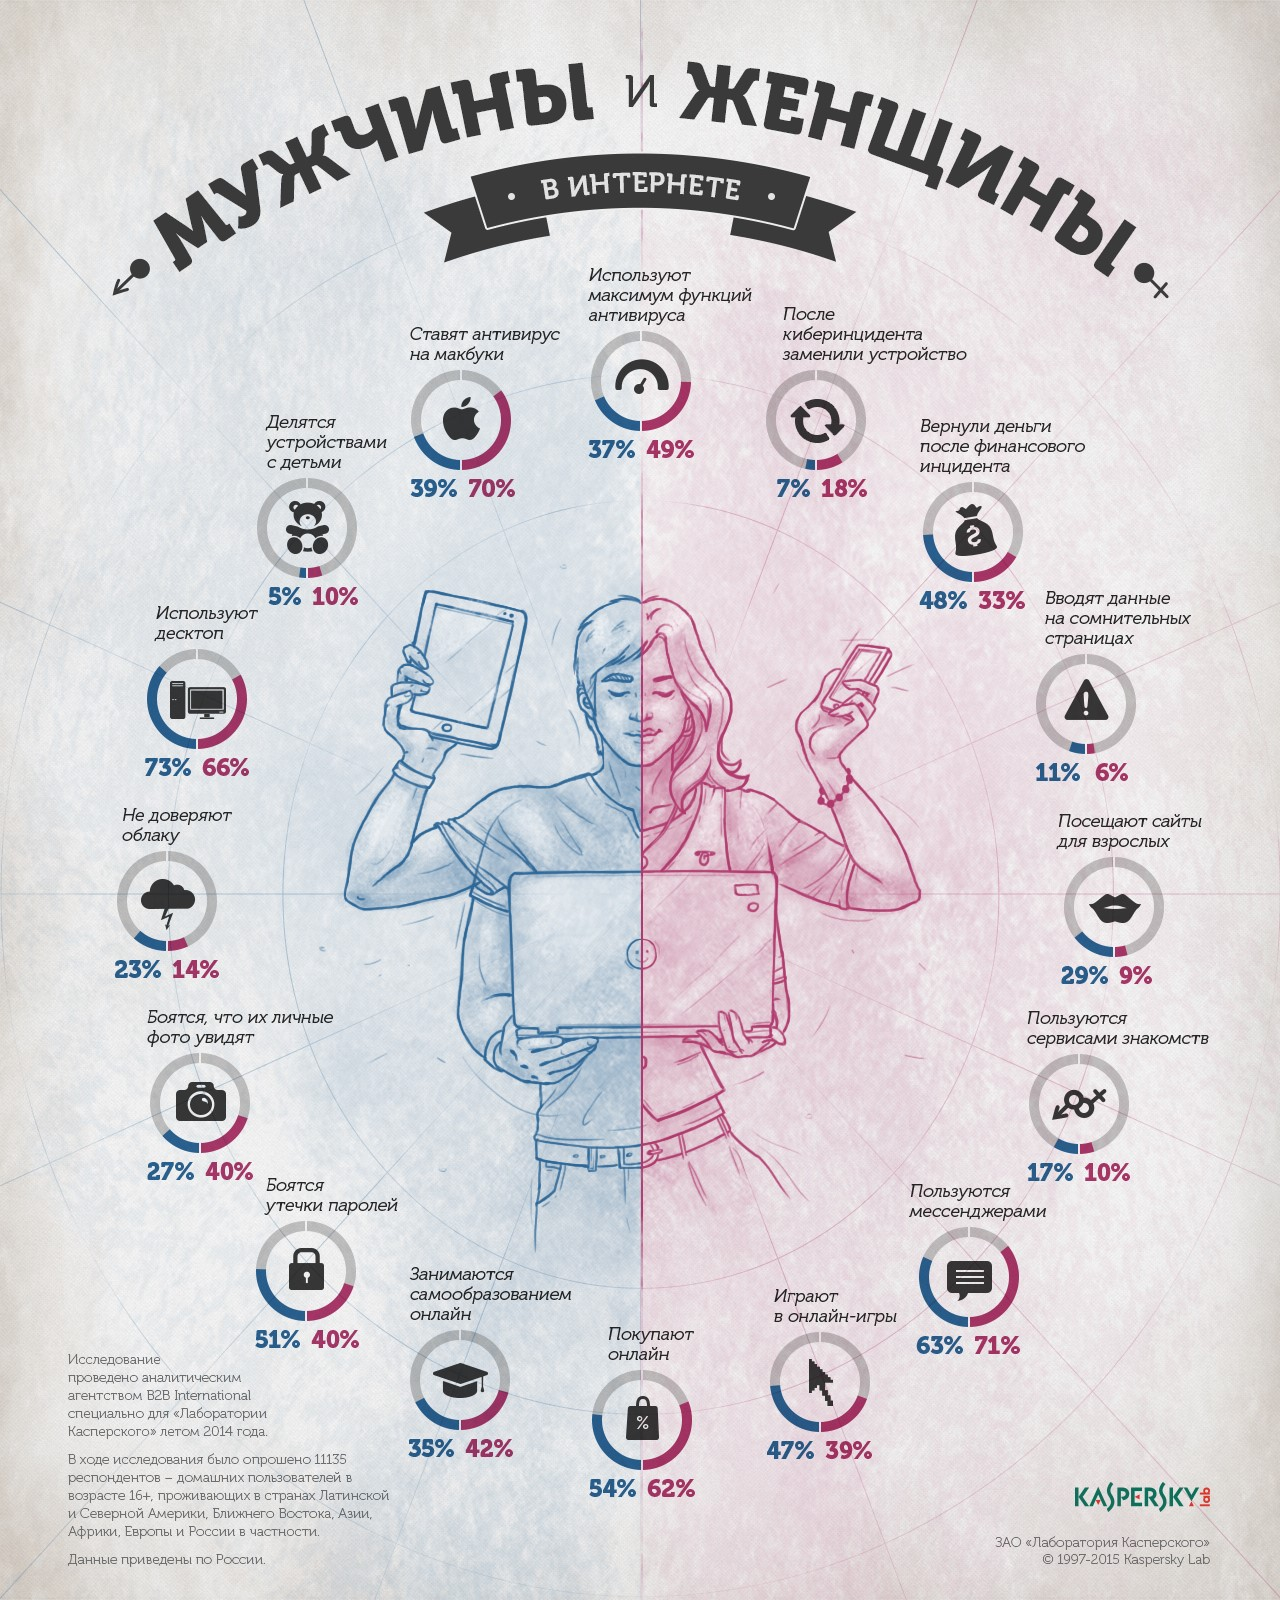 Kaspersky Infograpchics Man and Woman